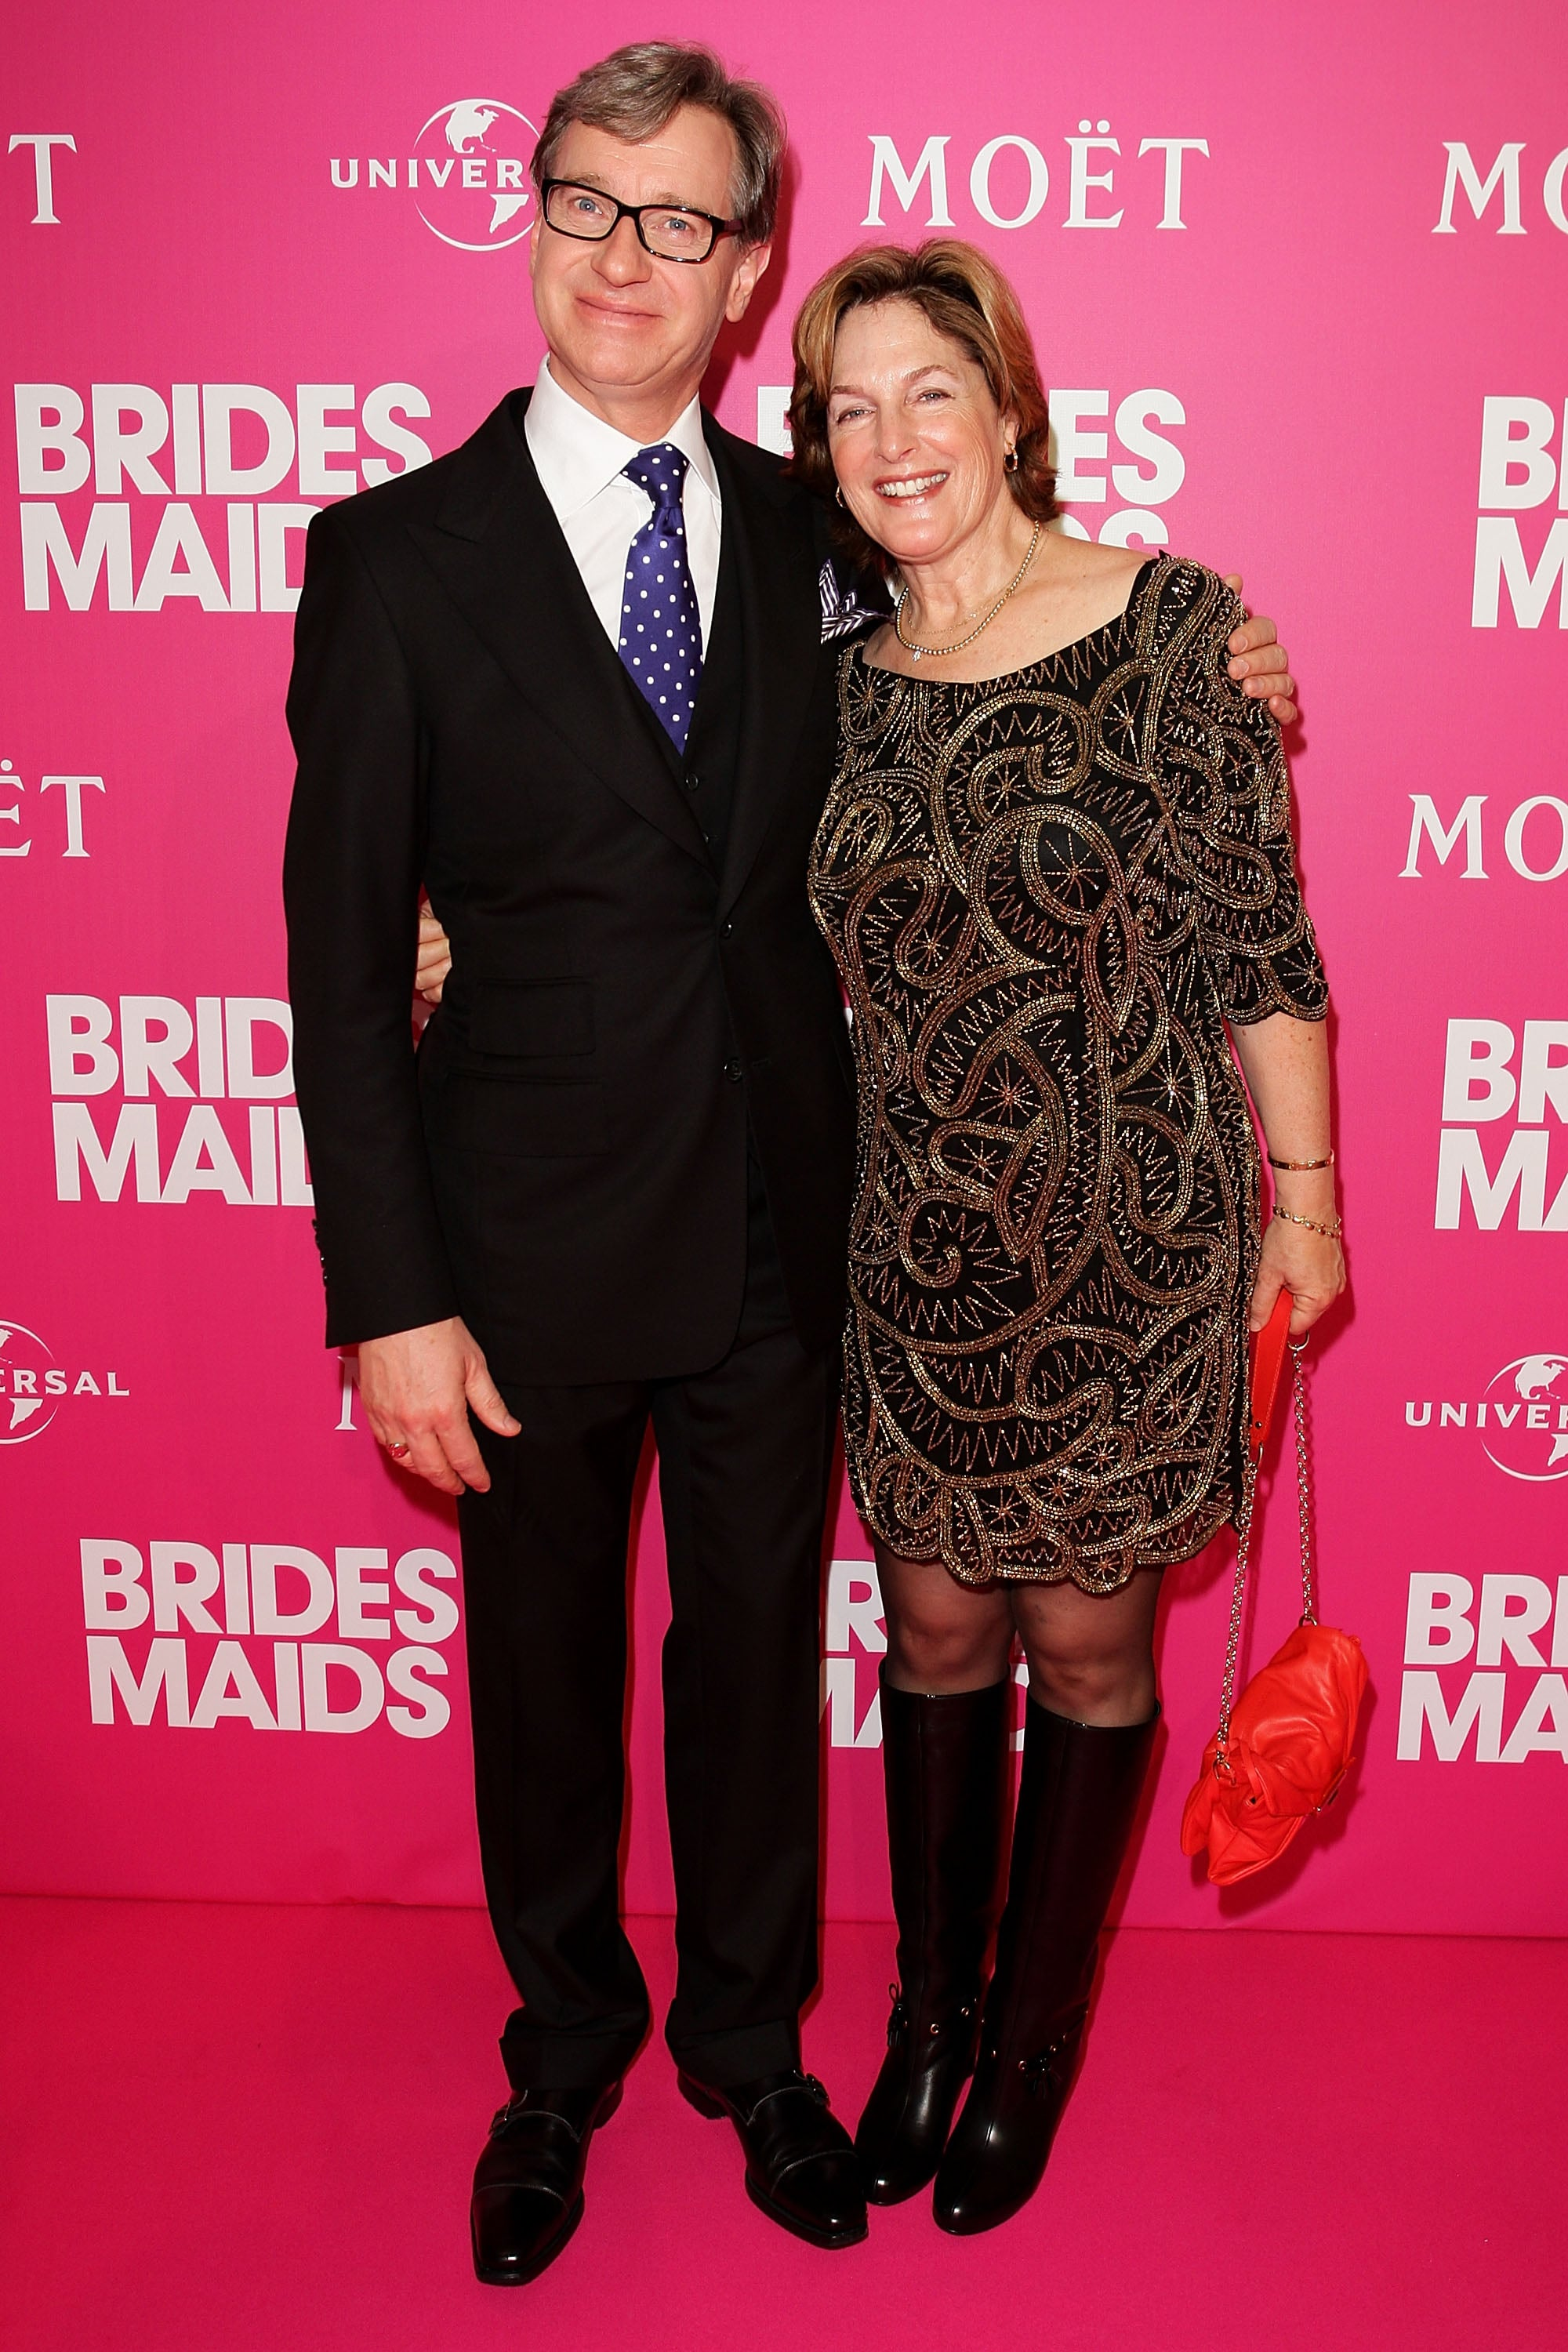 Paul and Laurie Feig